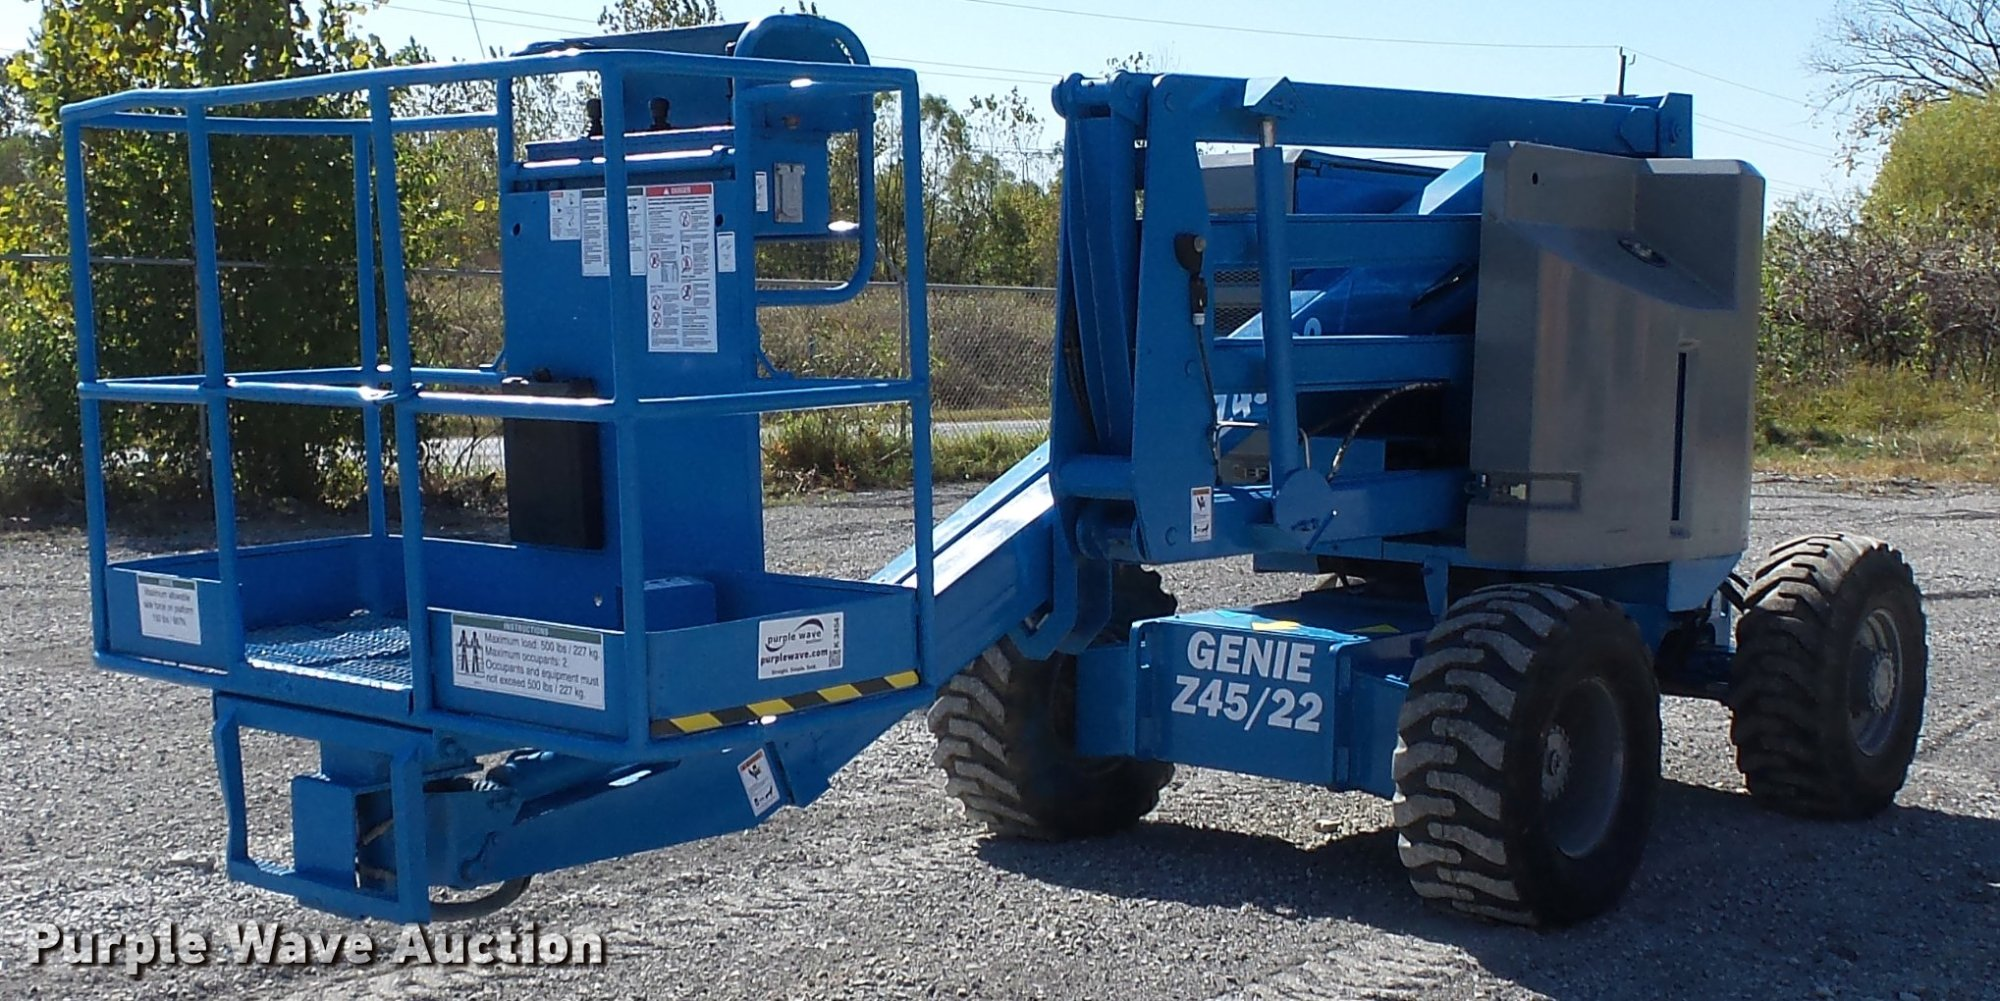 hight resolution of k3454 image for item k3454 1998 genie z45 22 boom lift